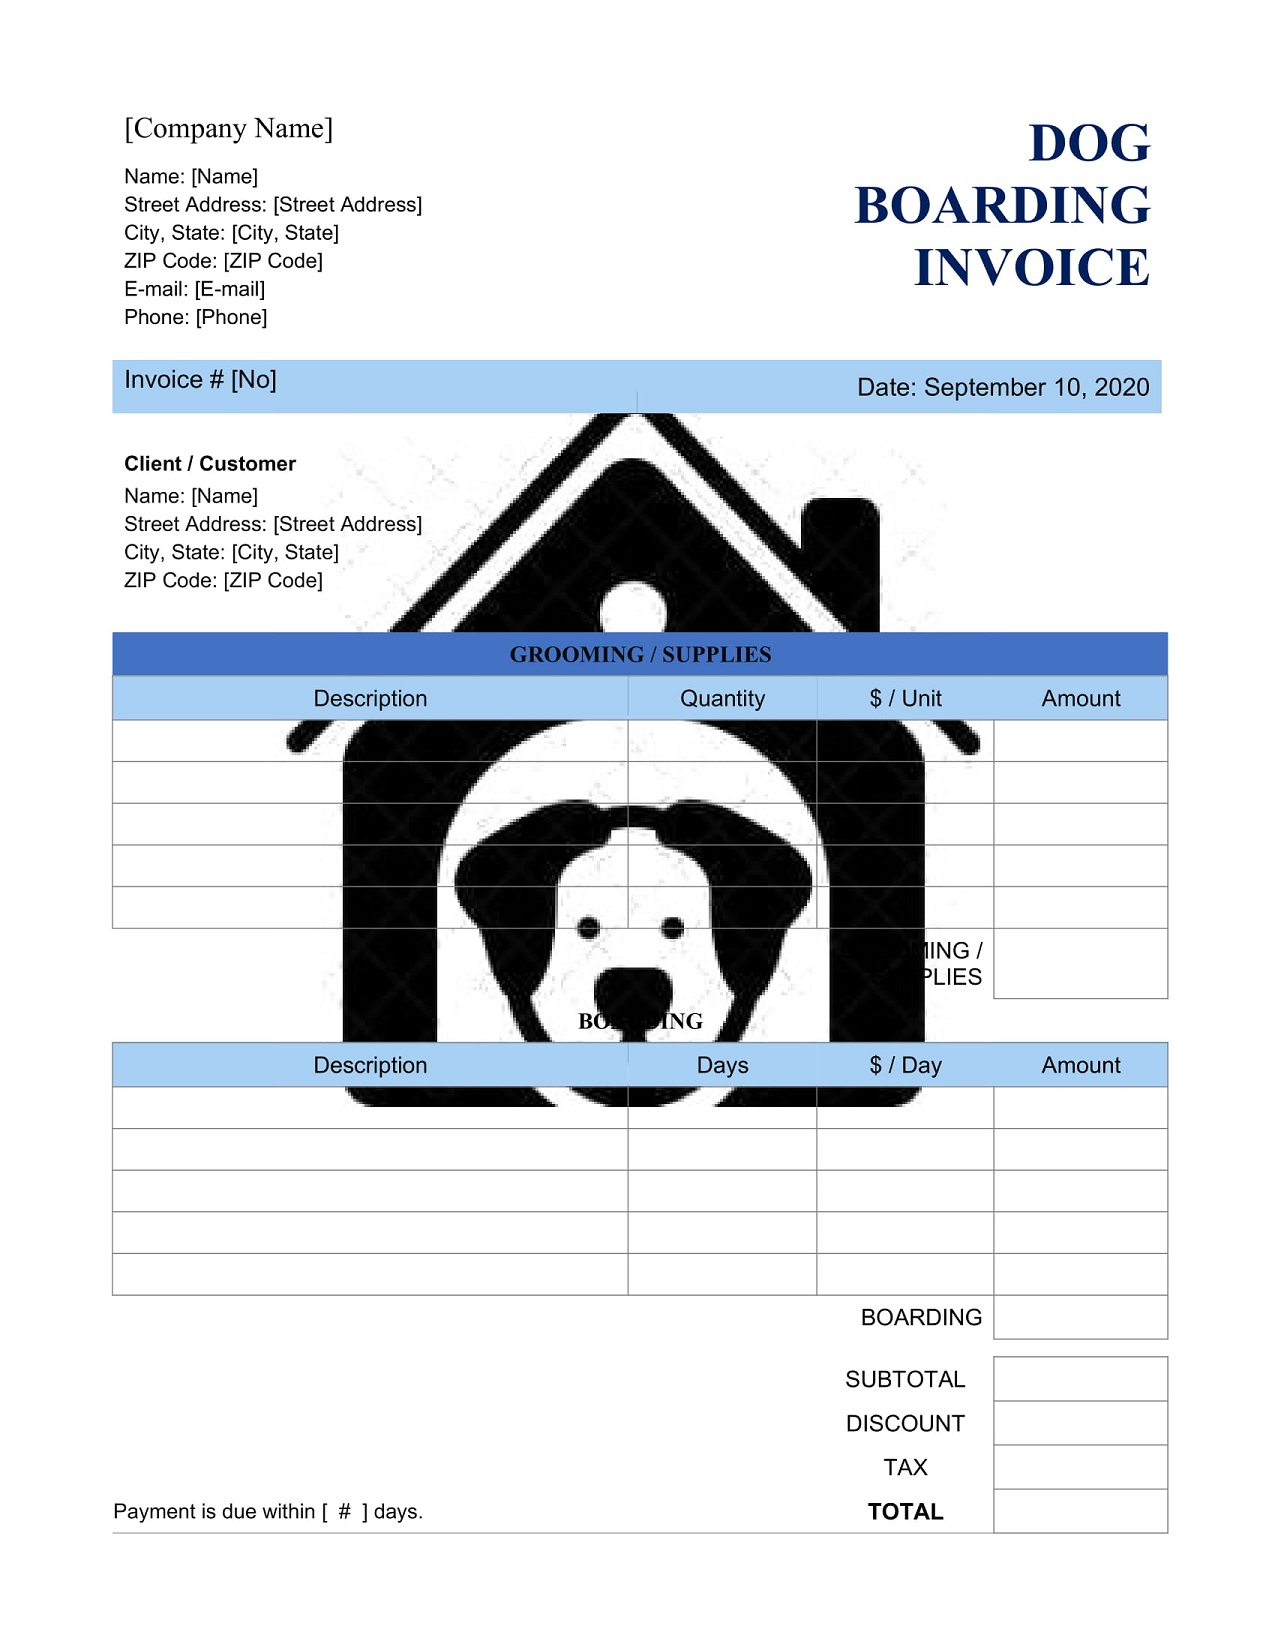 Dog Boarding Invoice Template Word